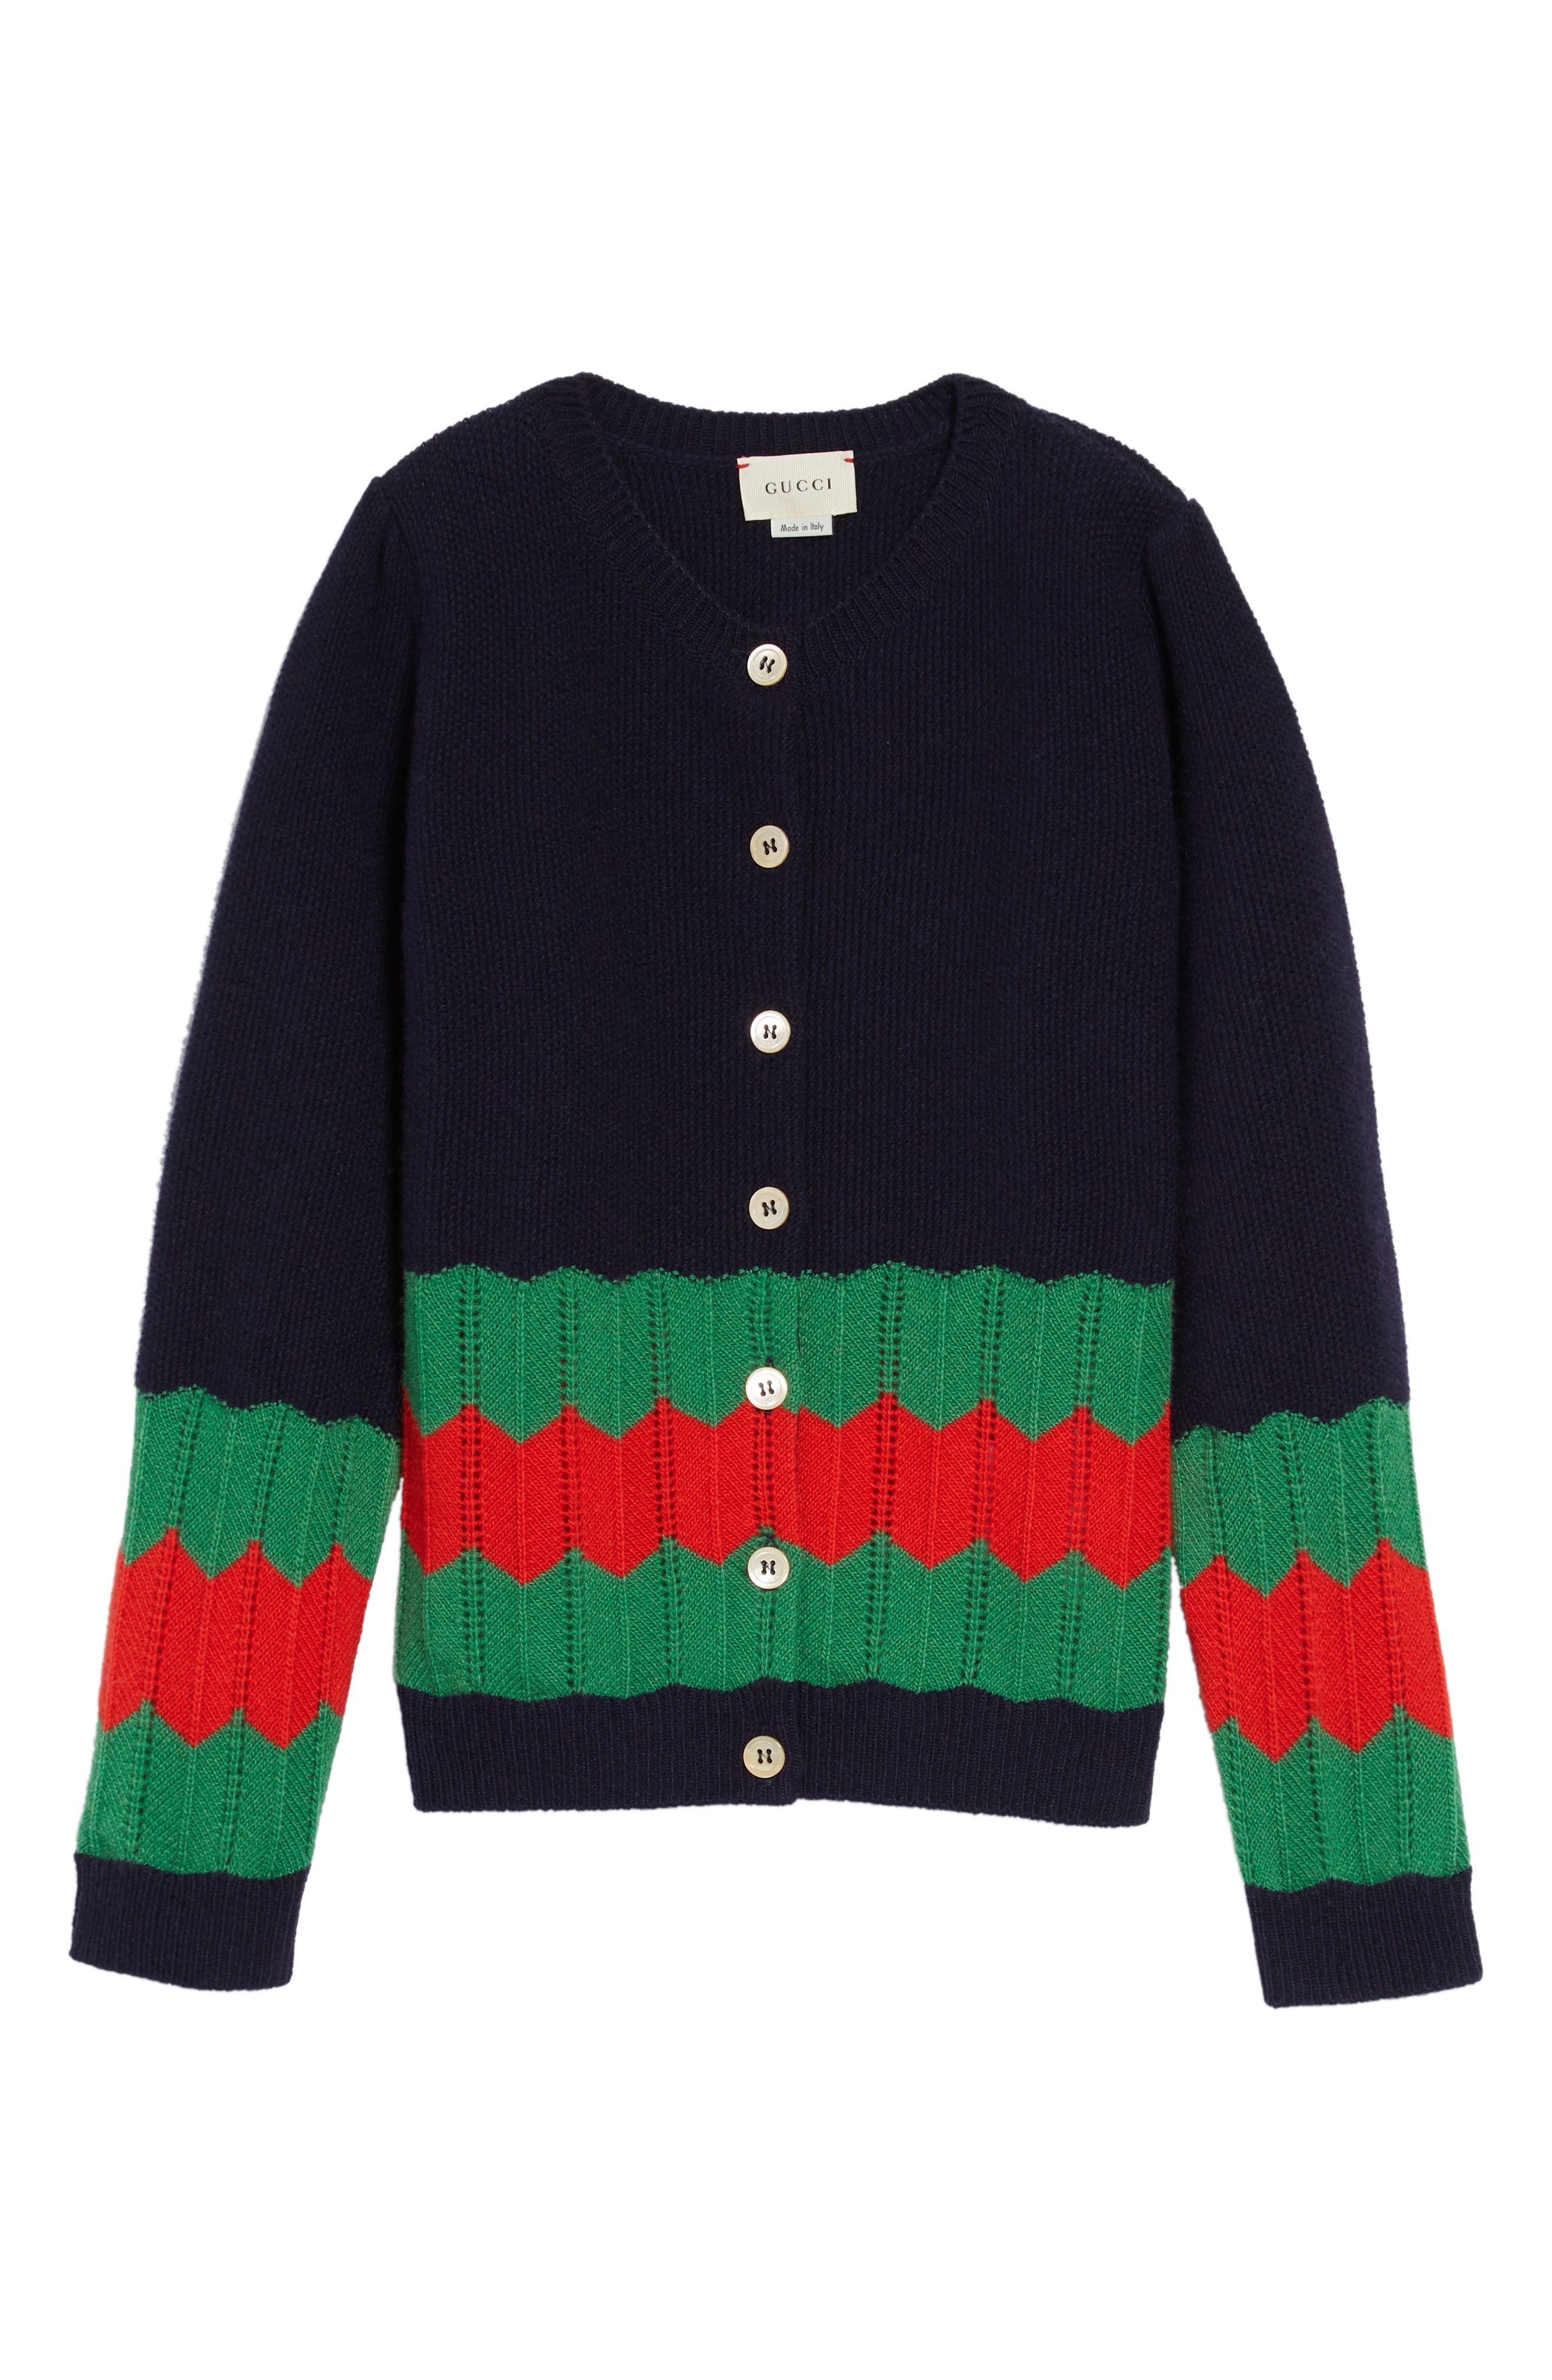 Wool Knit Cardigan, Main, color, NAVY/ GRASS/ LIVE RED